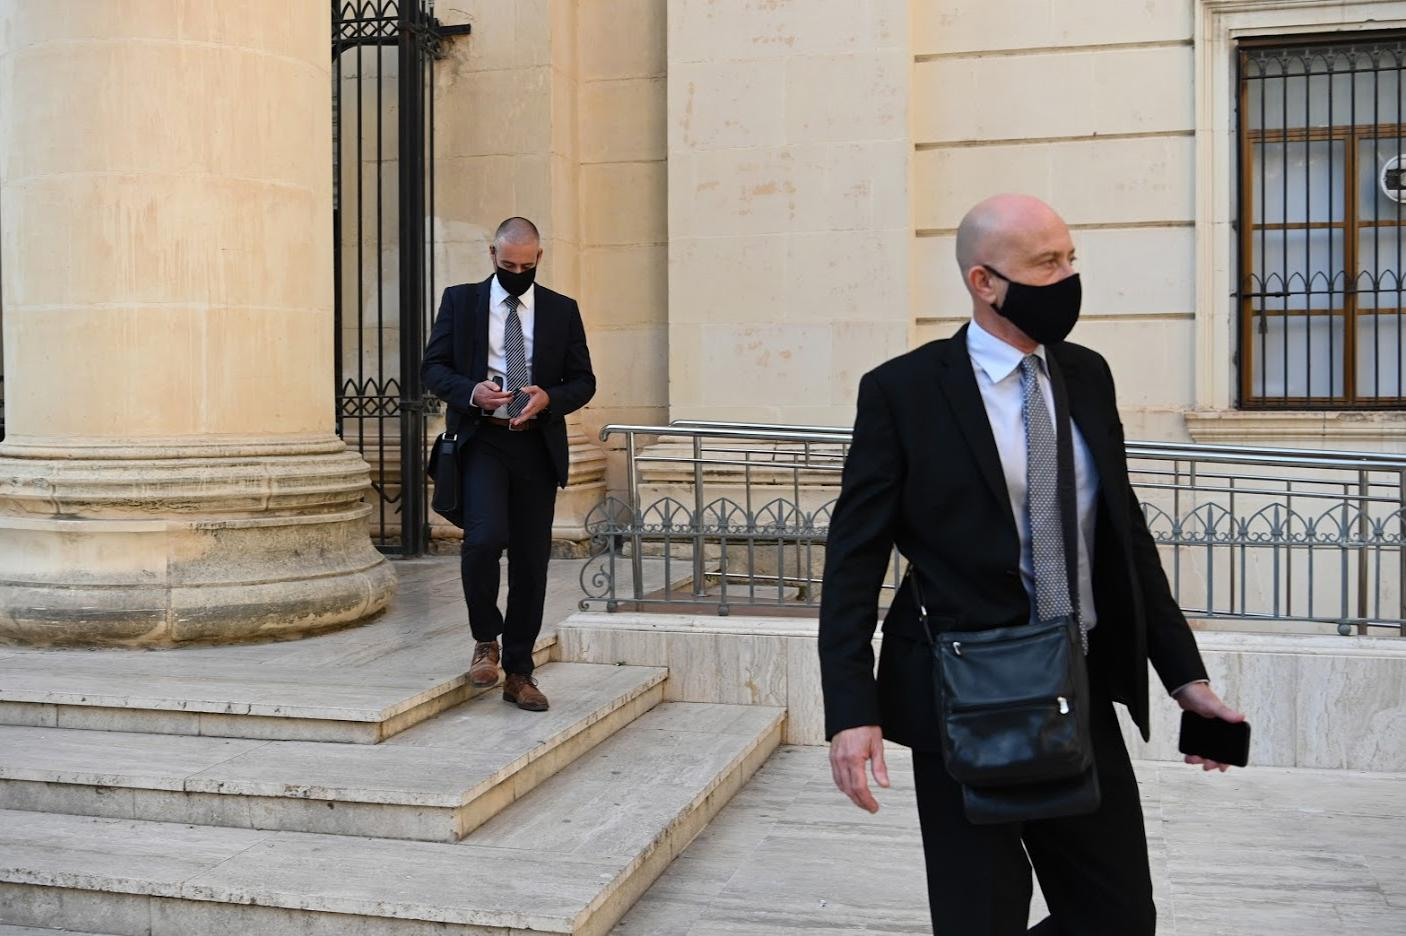 Brian Tonna and Karl Cini exiting court in a file photo.jpg